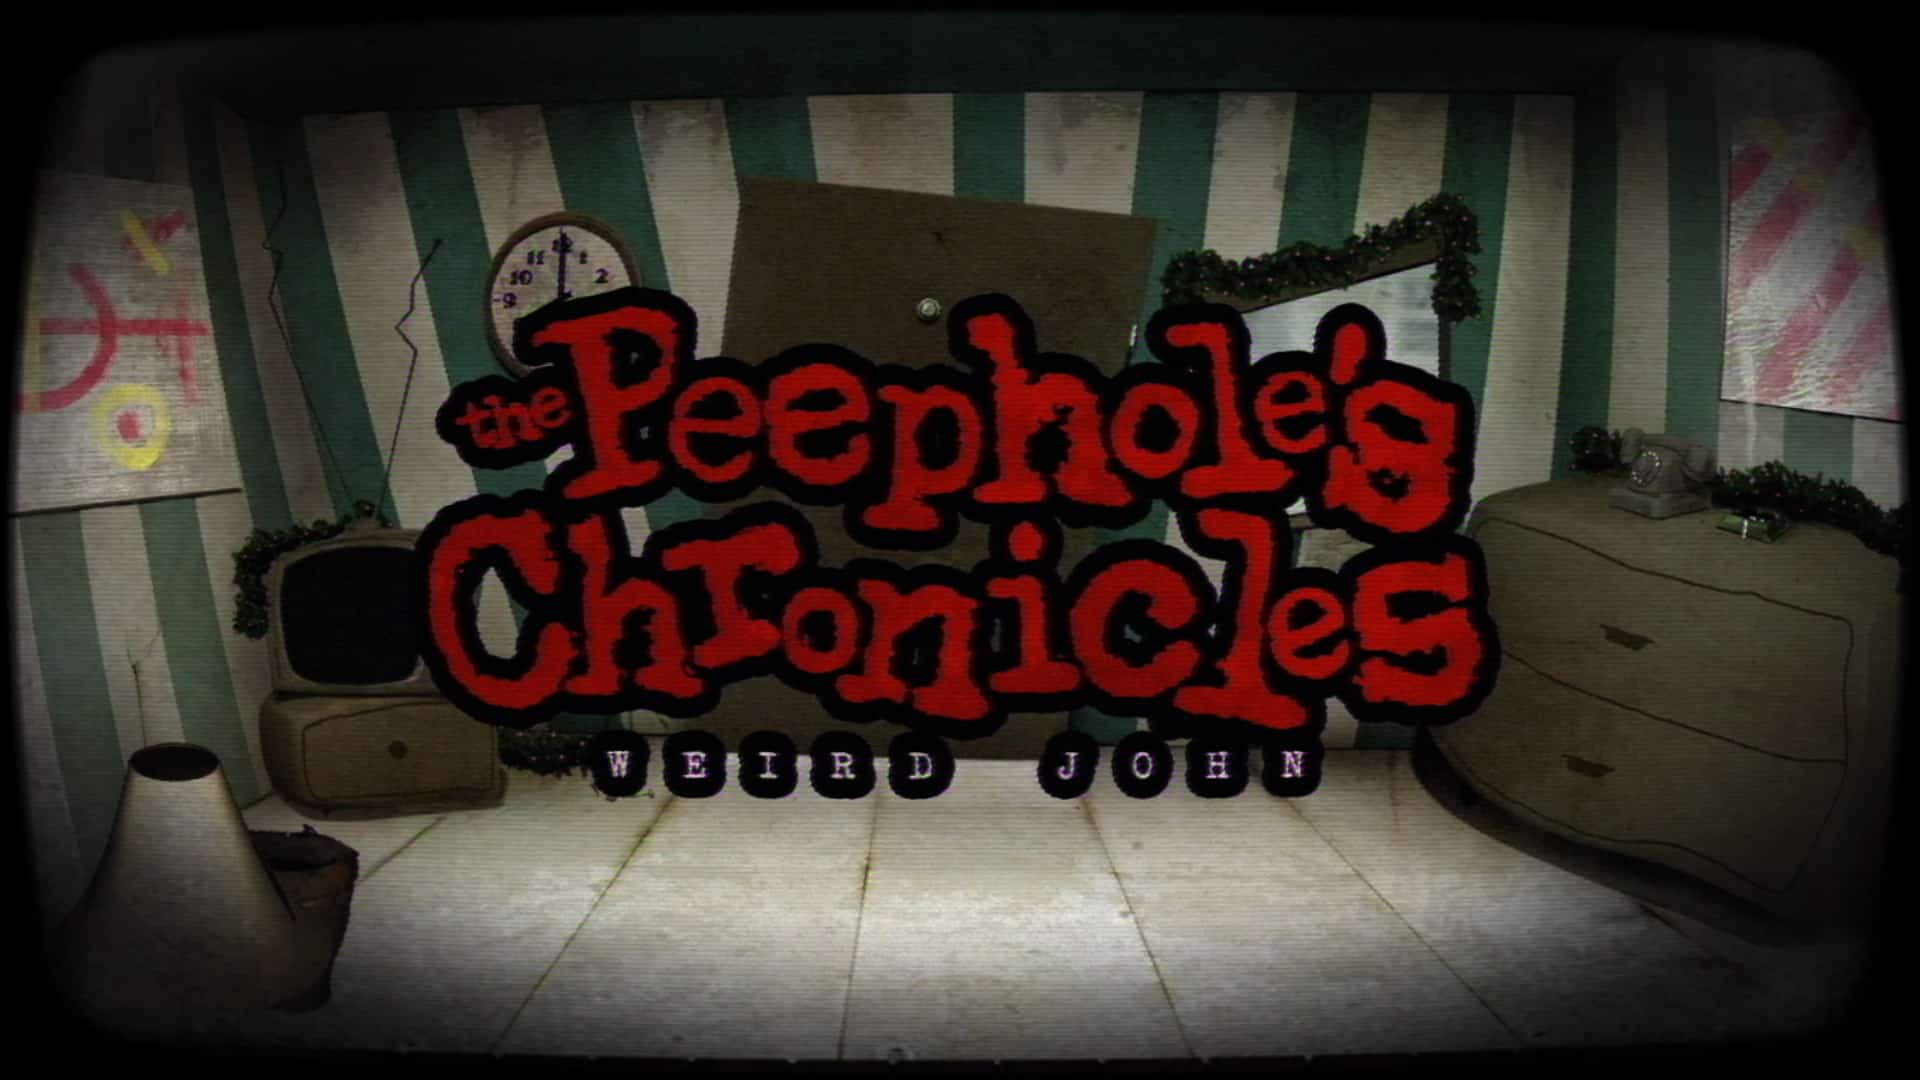 stanza logo - ULTRA-INDIE SPOTLIGHT SUNDAYS: THE PEEPHOLE'S CHRONICLES: WEIRD JOHN